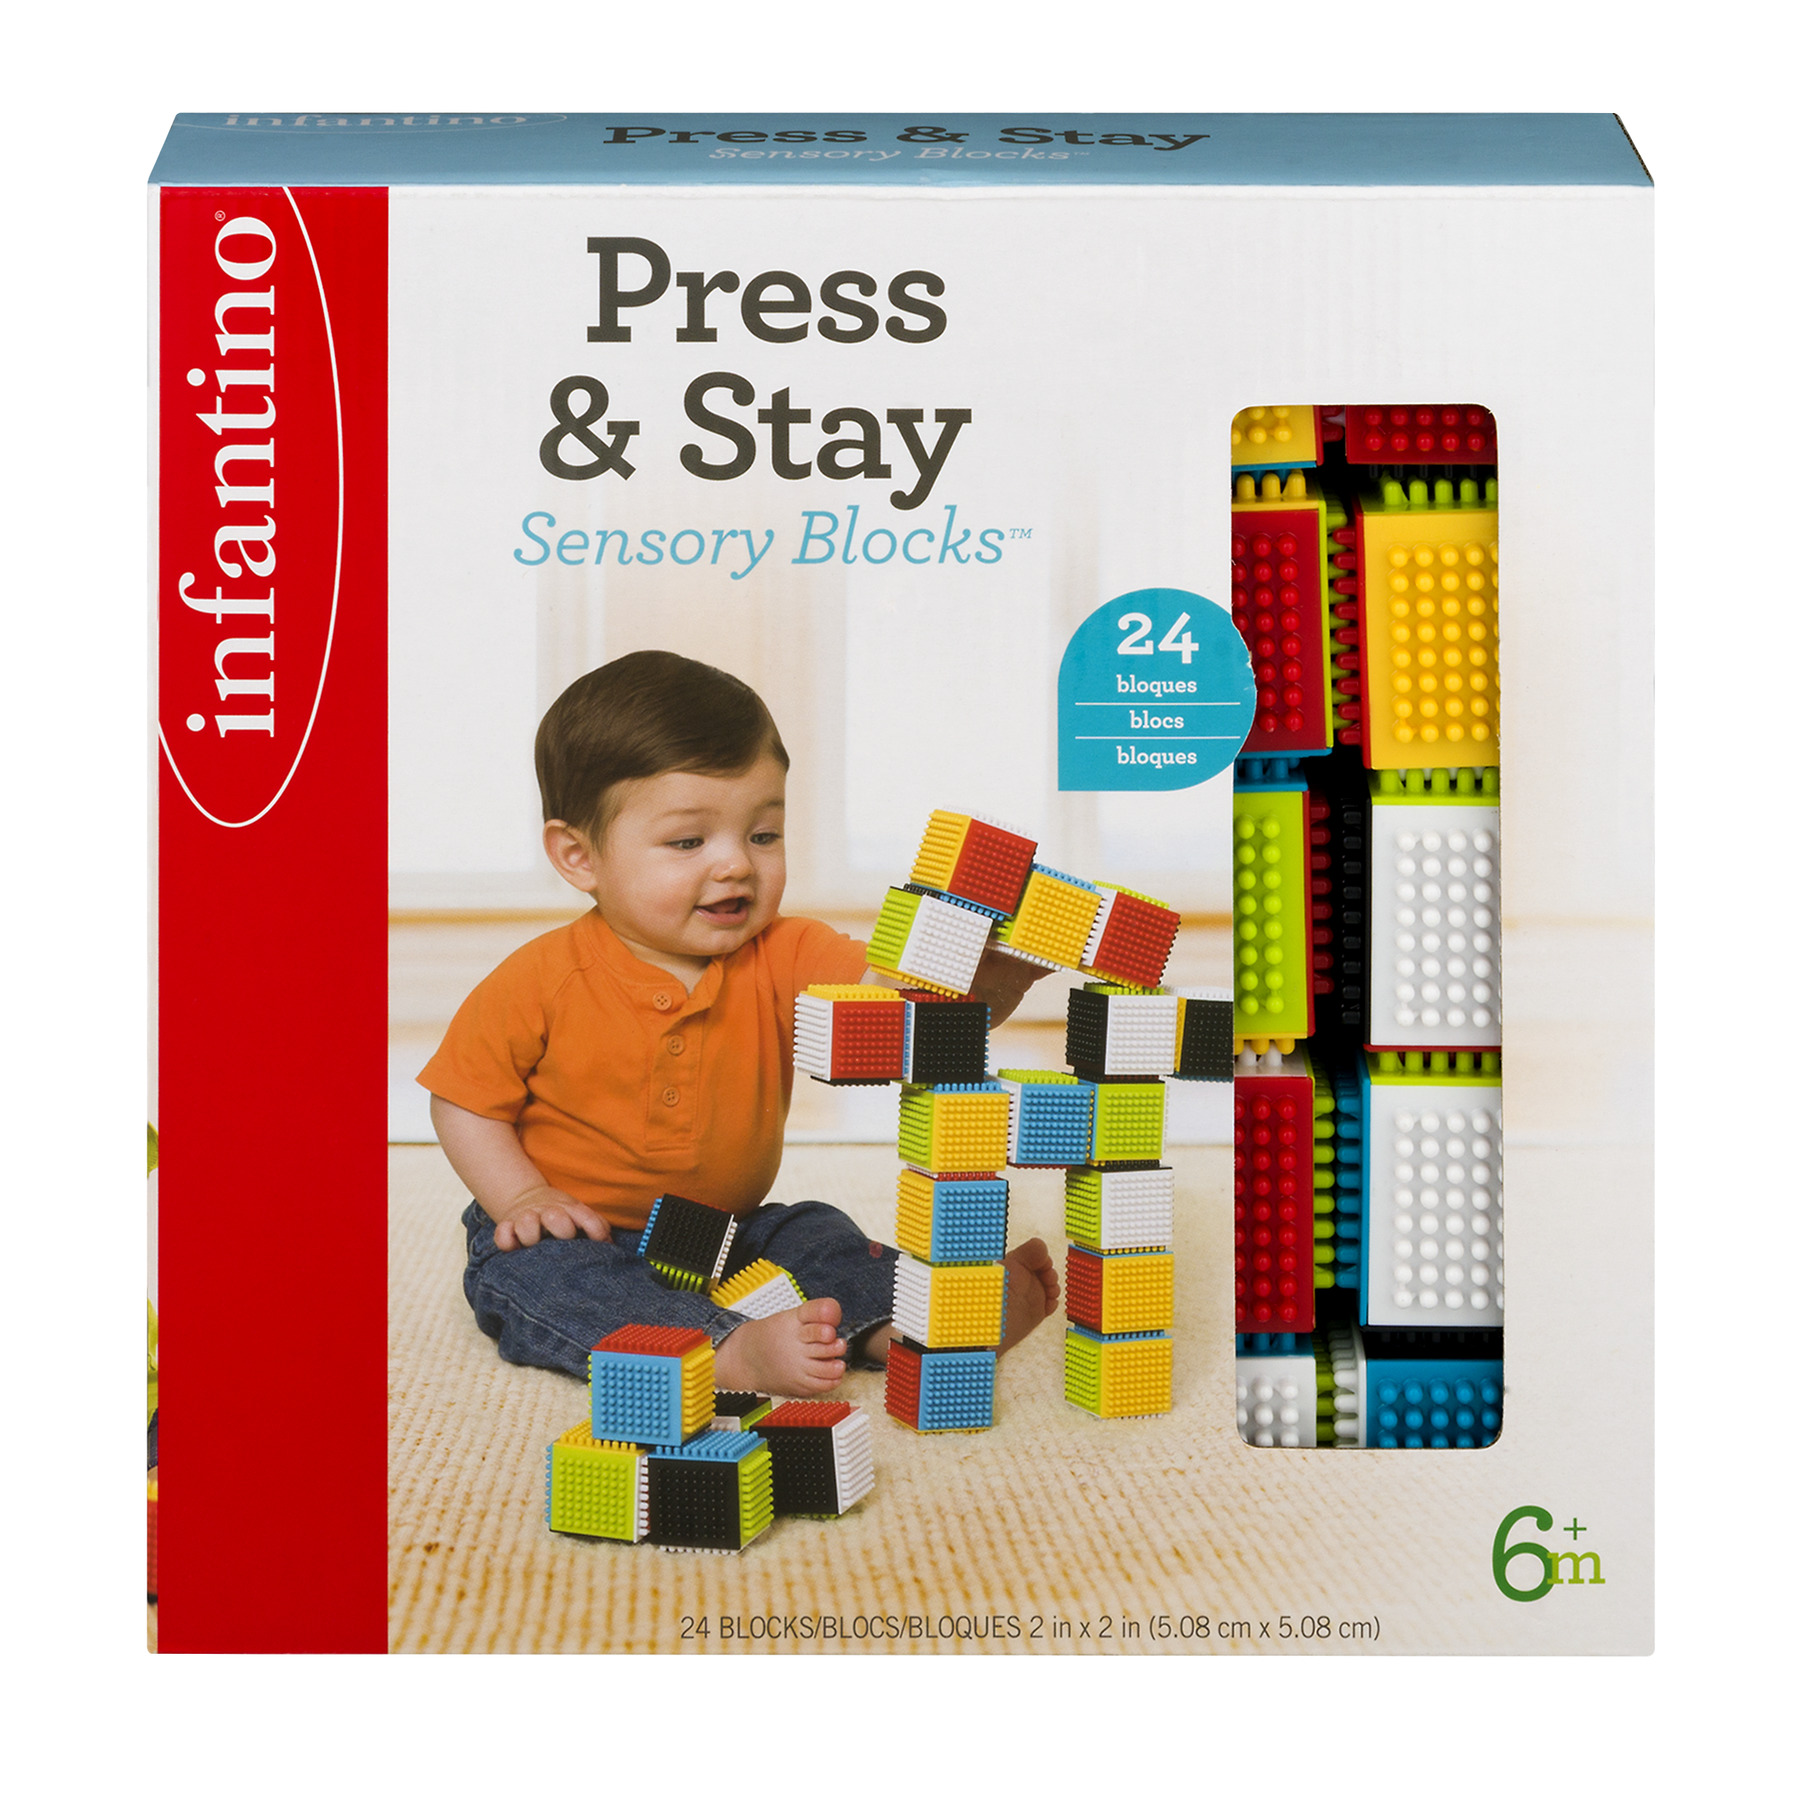 Infantino Press & Stay Sensory Blocks 6+m - 24 CT24.0 CT